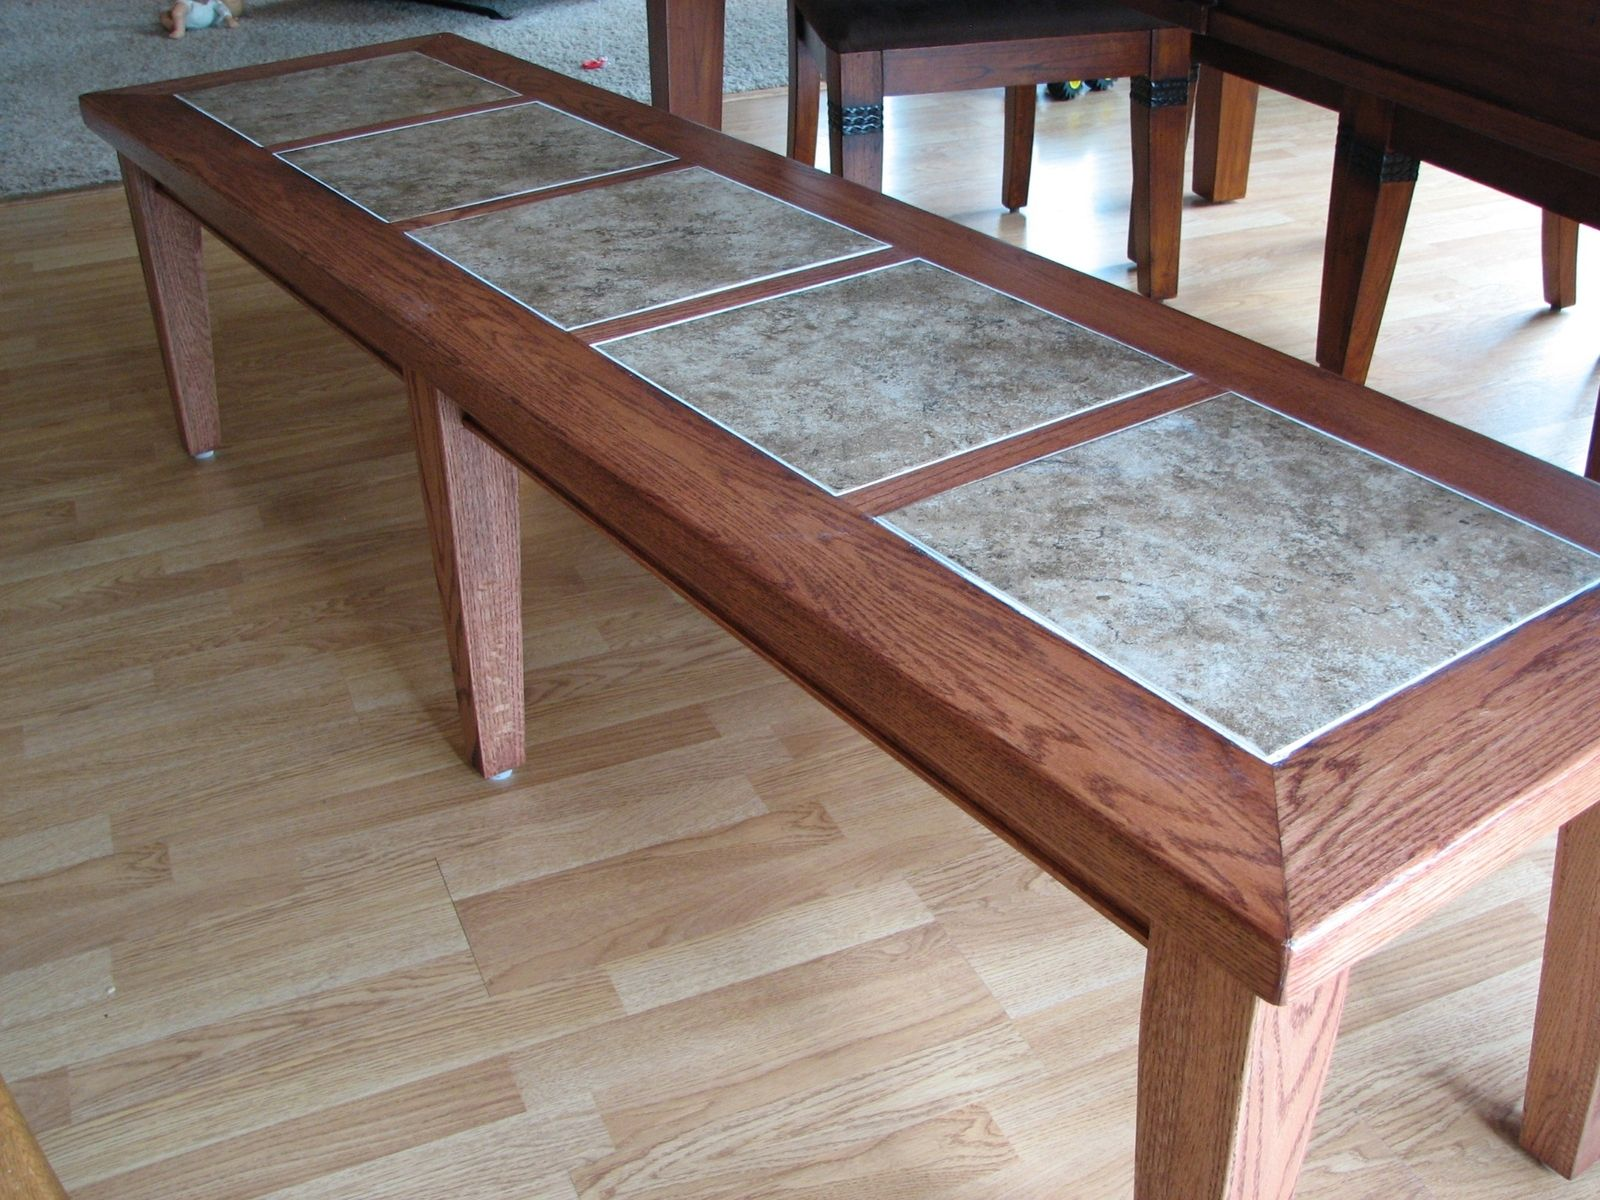 Hand Crafted Inlay Tile Dining Table Bench by Stockwell Creek